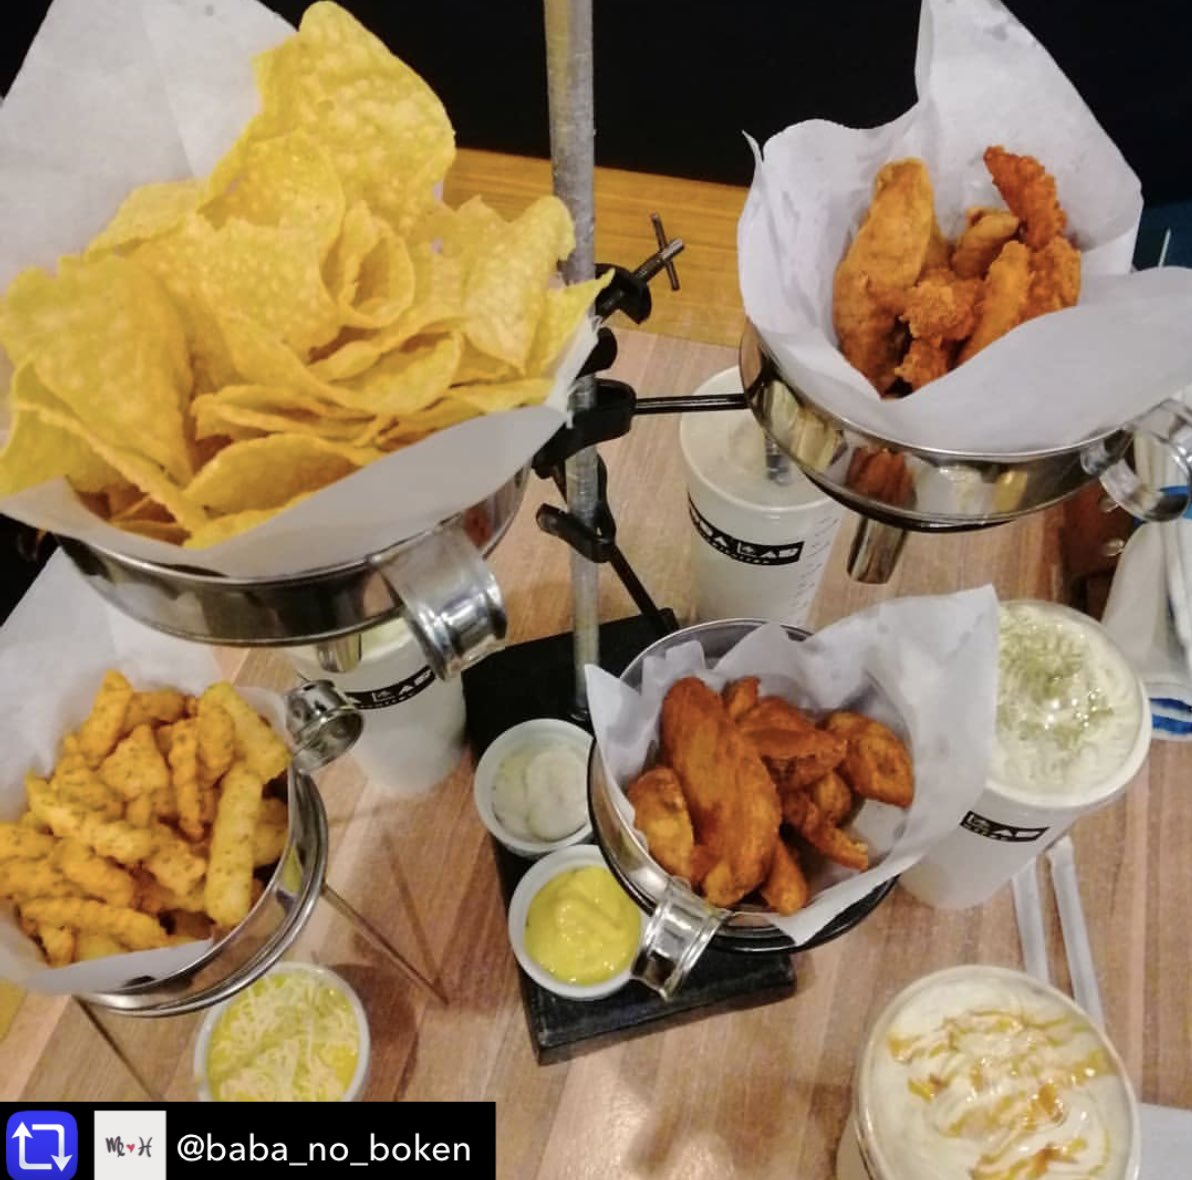 Tempt your tastebuds to an array of tantalising labtizers to pair up with your fave Bubba Lab drinks. Food trip Thursday, indeed!🤓💜 Repost from baba_no_boken using repost_now_ app #BubbaLab #BubbaLabCafe #Tea #Juice #Coffee #BubbaLabRoadToRecovery #Marikina #MarikinaCity https://t.co/U7oqYUirIX